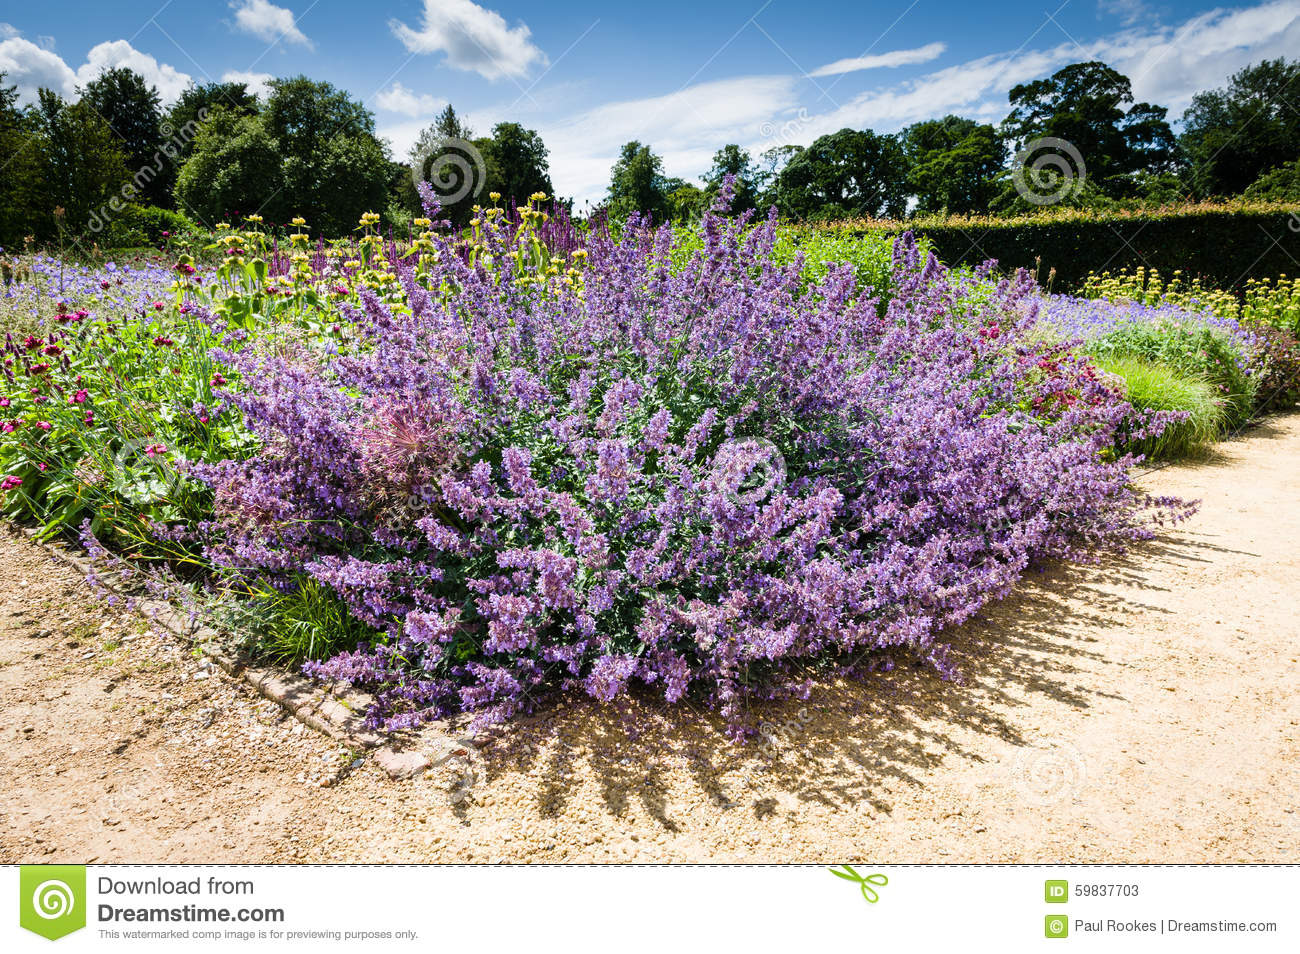 Purple flower perennial plant garden plants stock image image purple flower perennial plant garden plants mightylinksfo